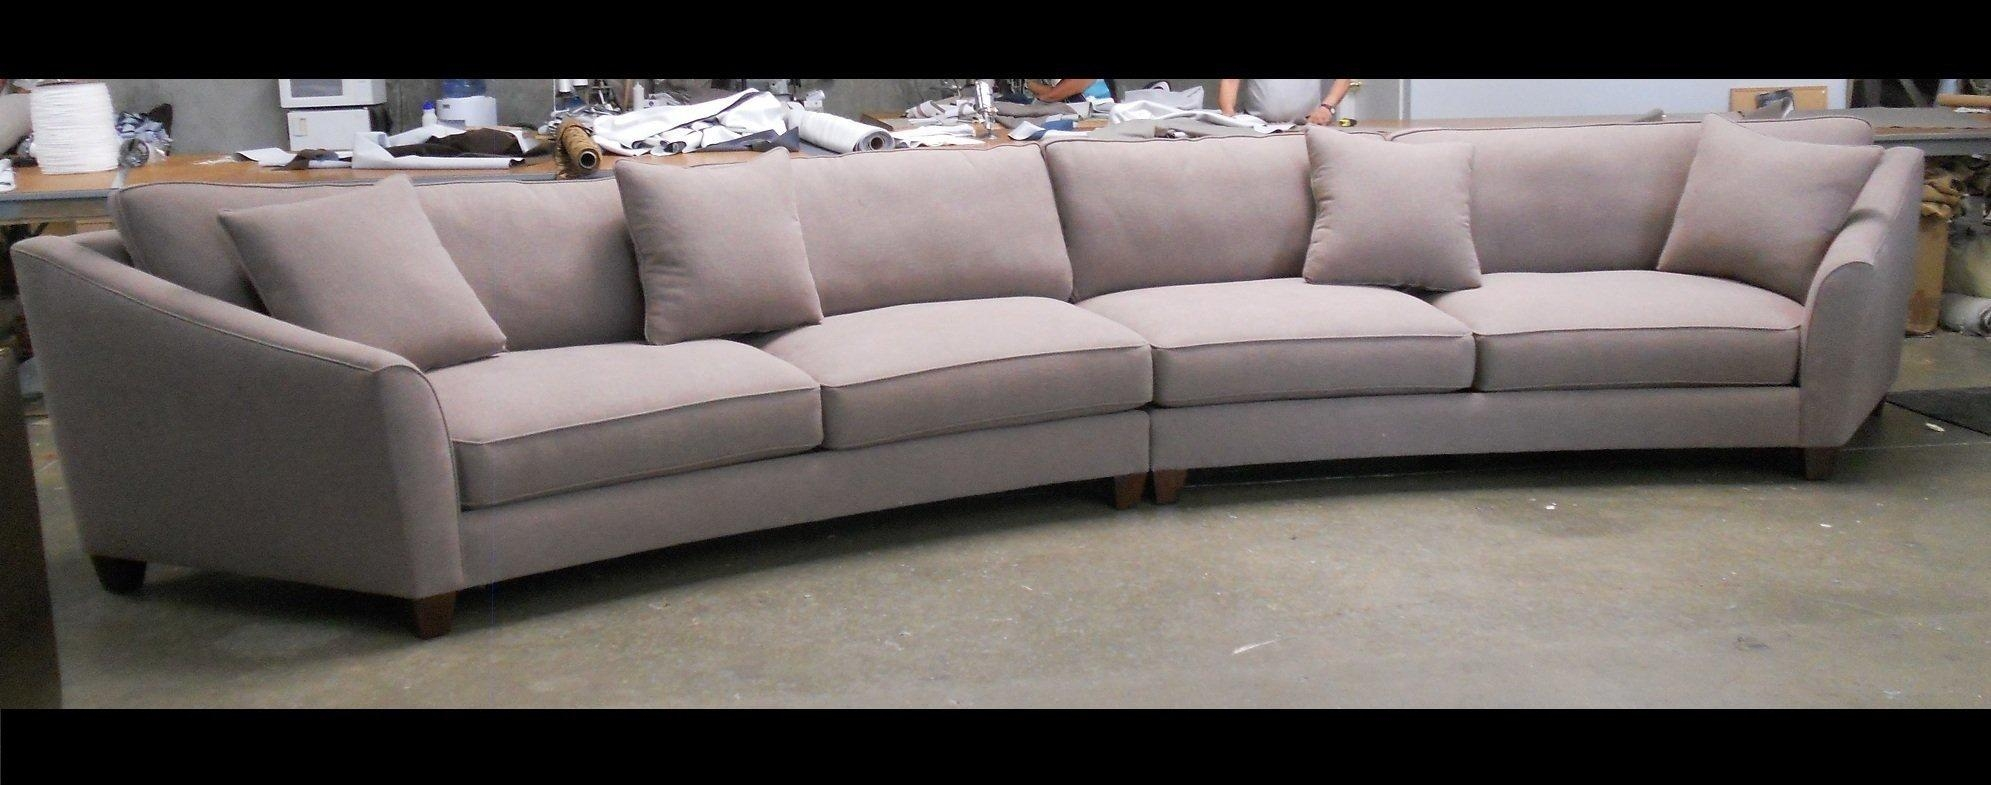 Curved Sectional Sofa Set – Rich Comfortable Upholstered Fabric With Regard To Large Comfortable Sectional Sofas (Image 3 of 20)